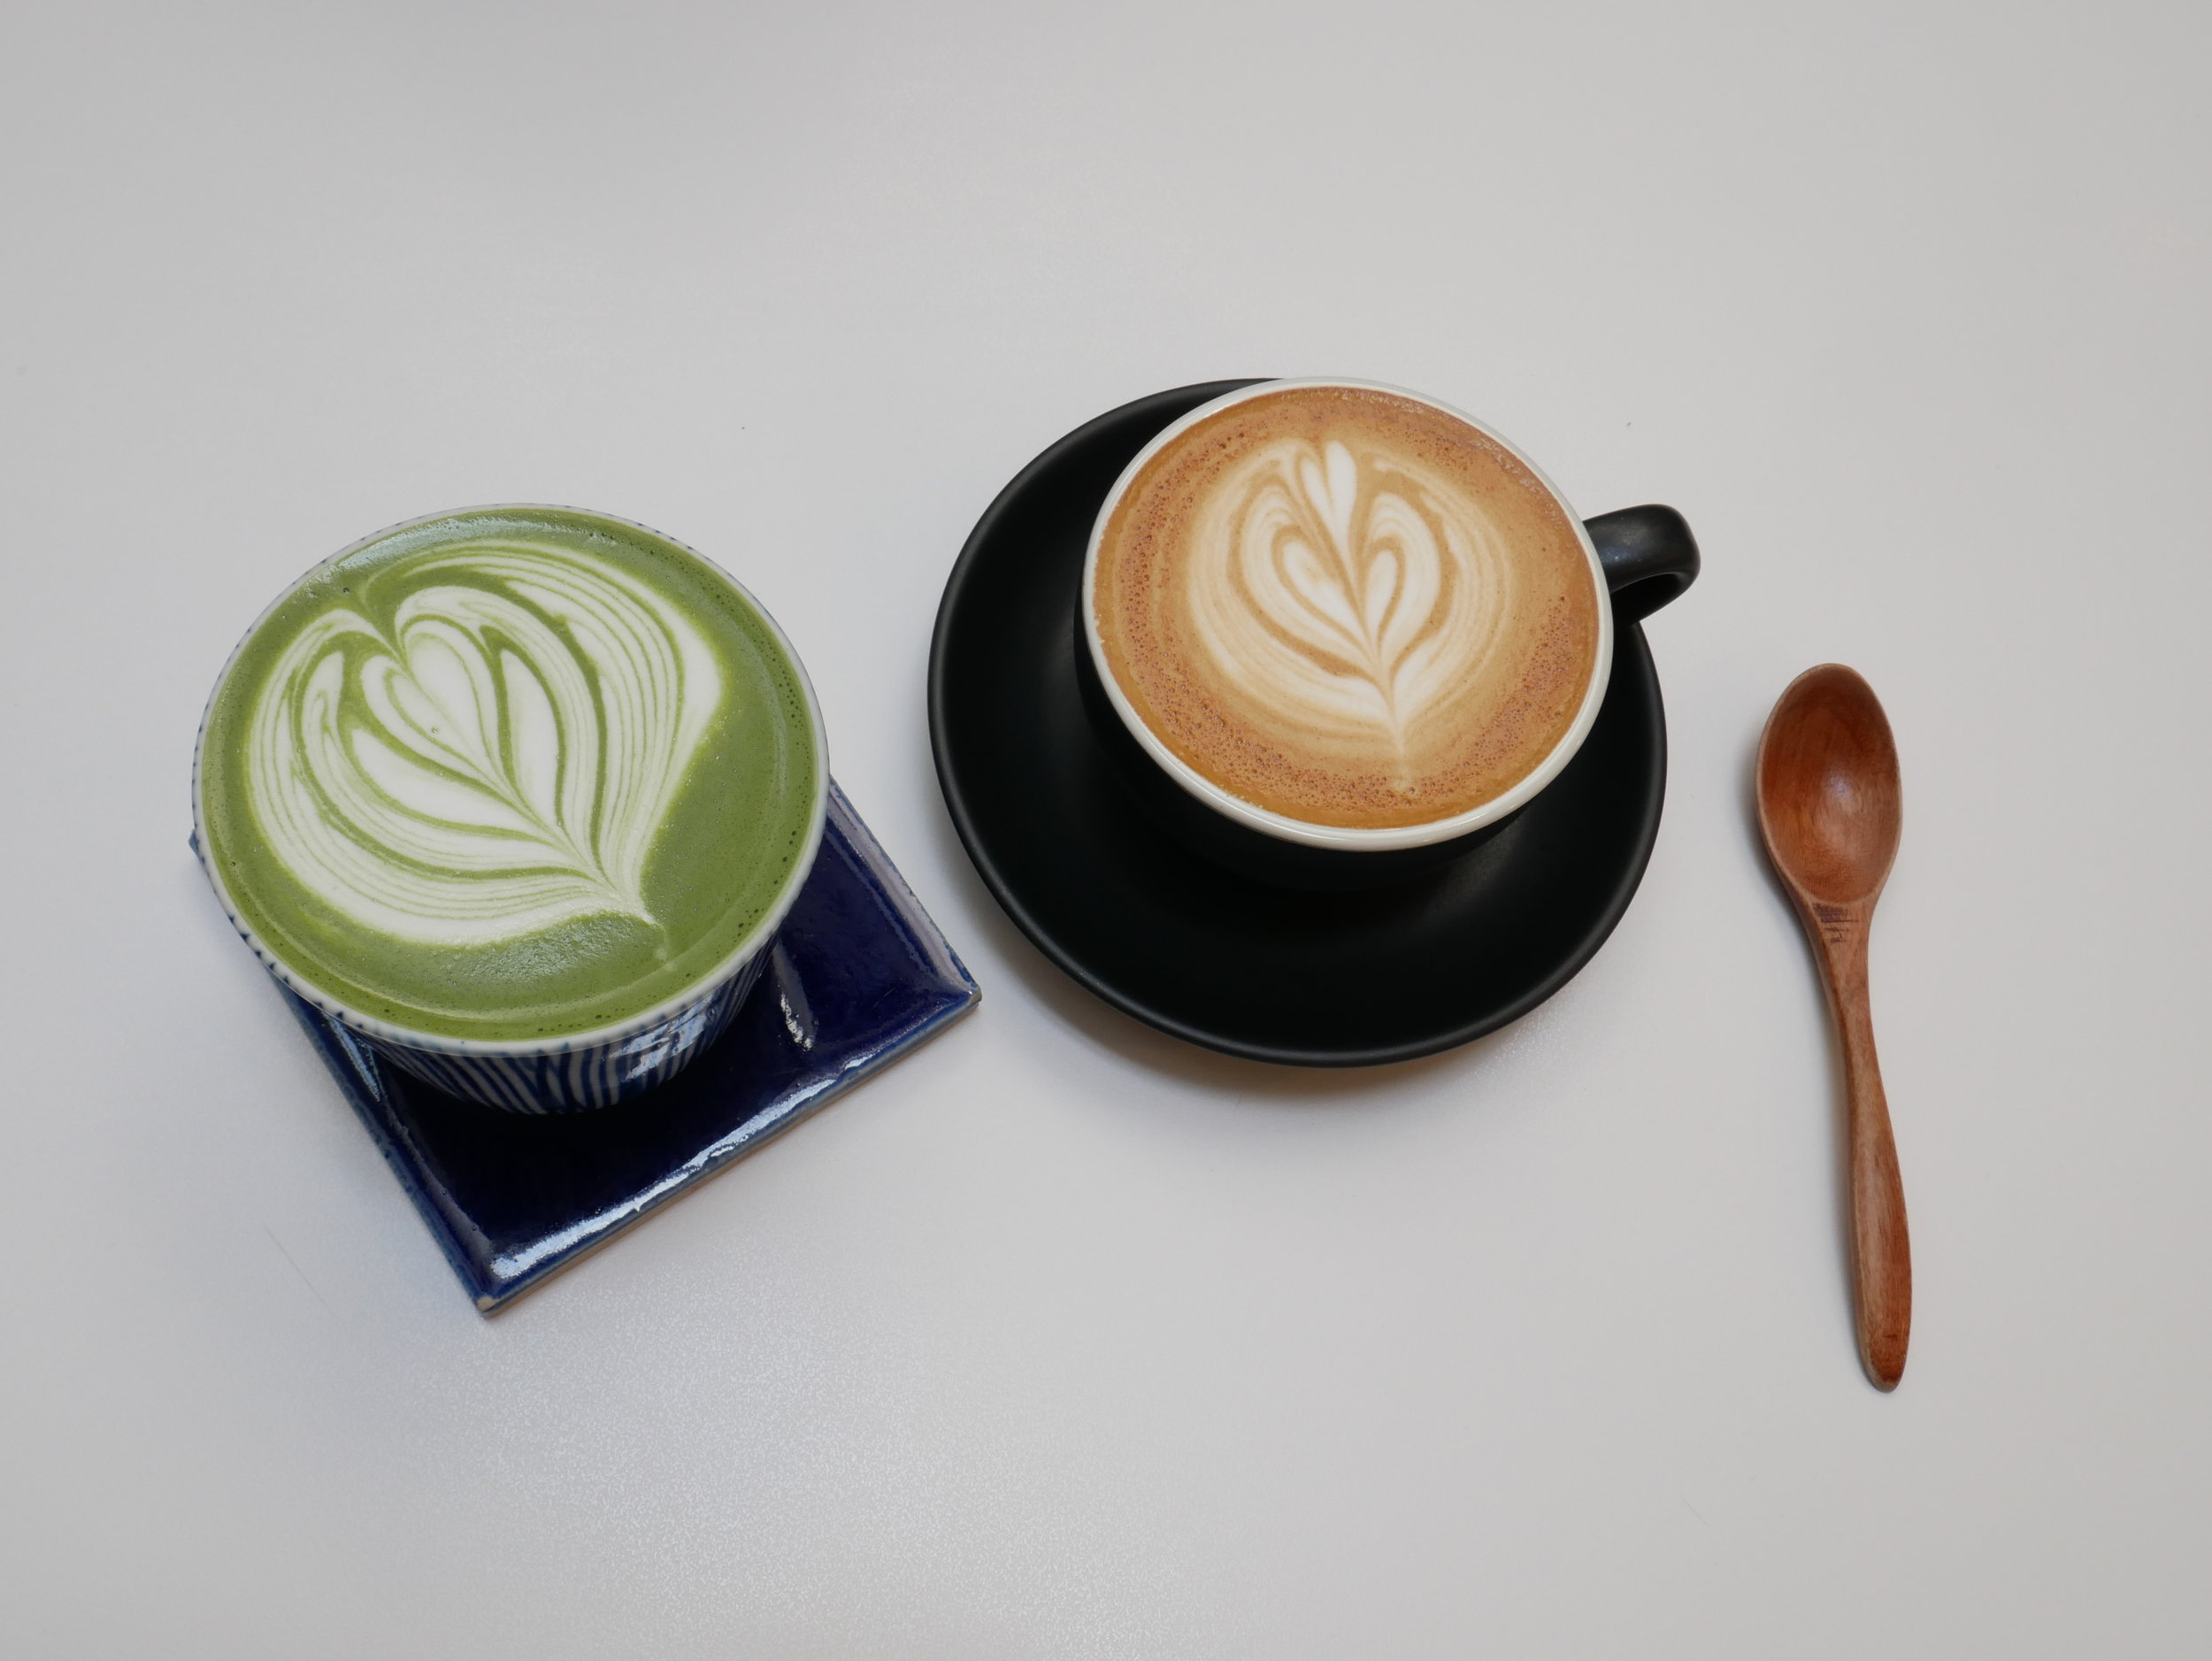 Forget the classic latte, why not add some matcha to your cup? Not only does it give it this vivid green colour, but matcha also has a variety of health benefits. Some people even recommend that you should consume some form of matcha every day as it promotes healthy digestion and a balanced gut.